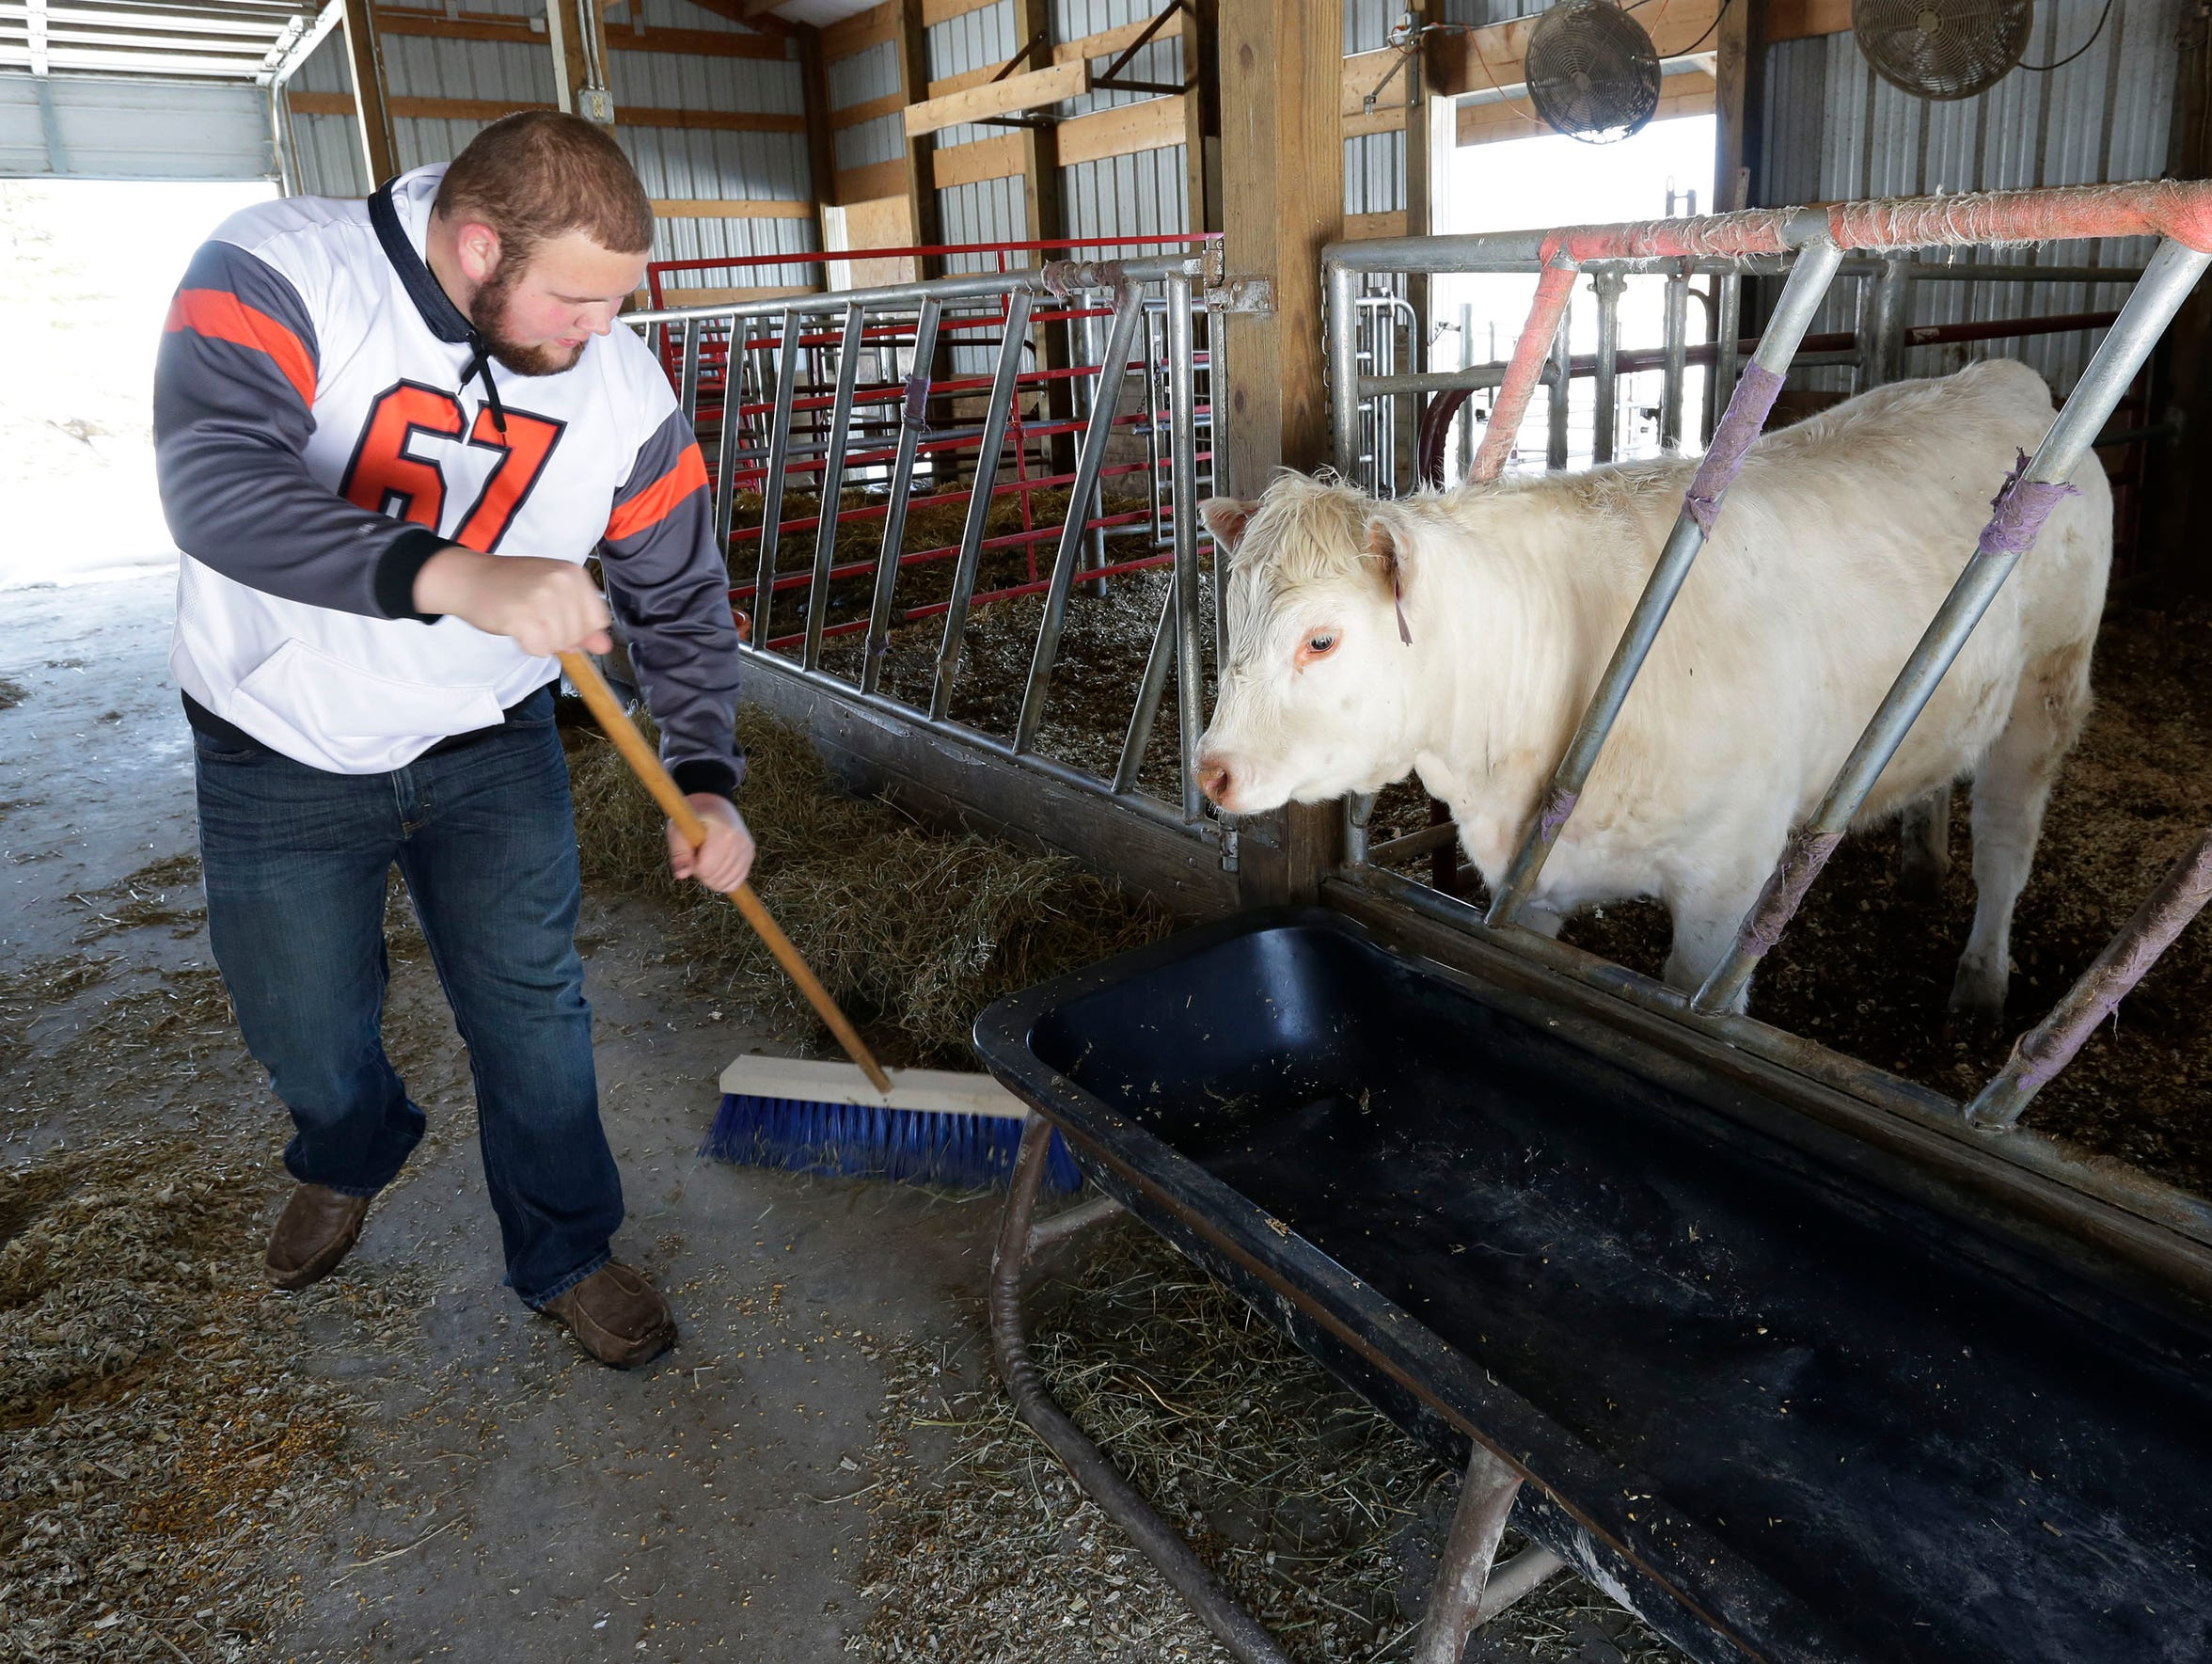 Bryce Ladwig sweeps the floor near his beef cattle,